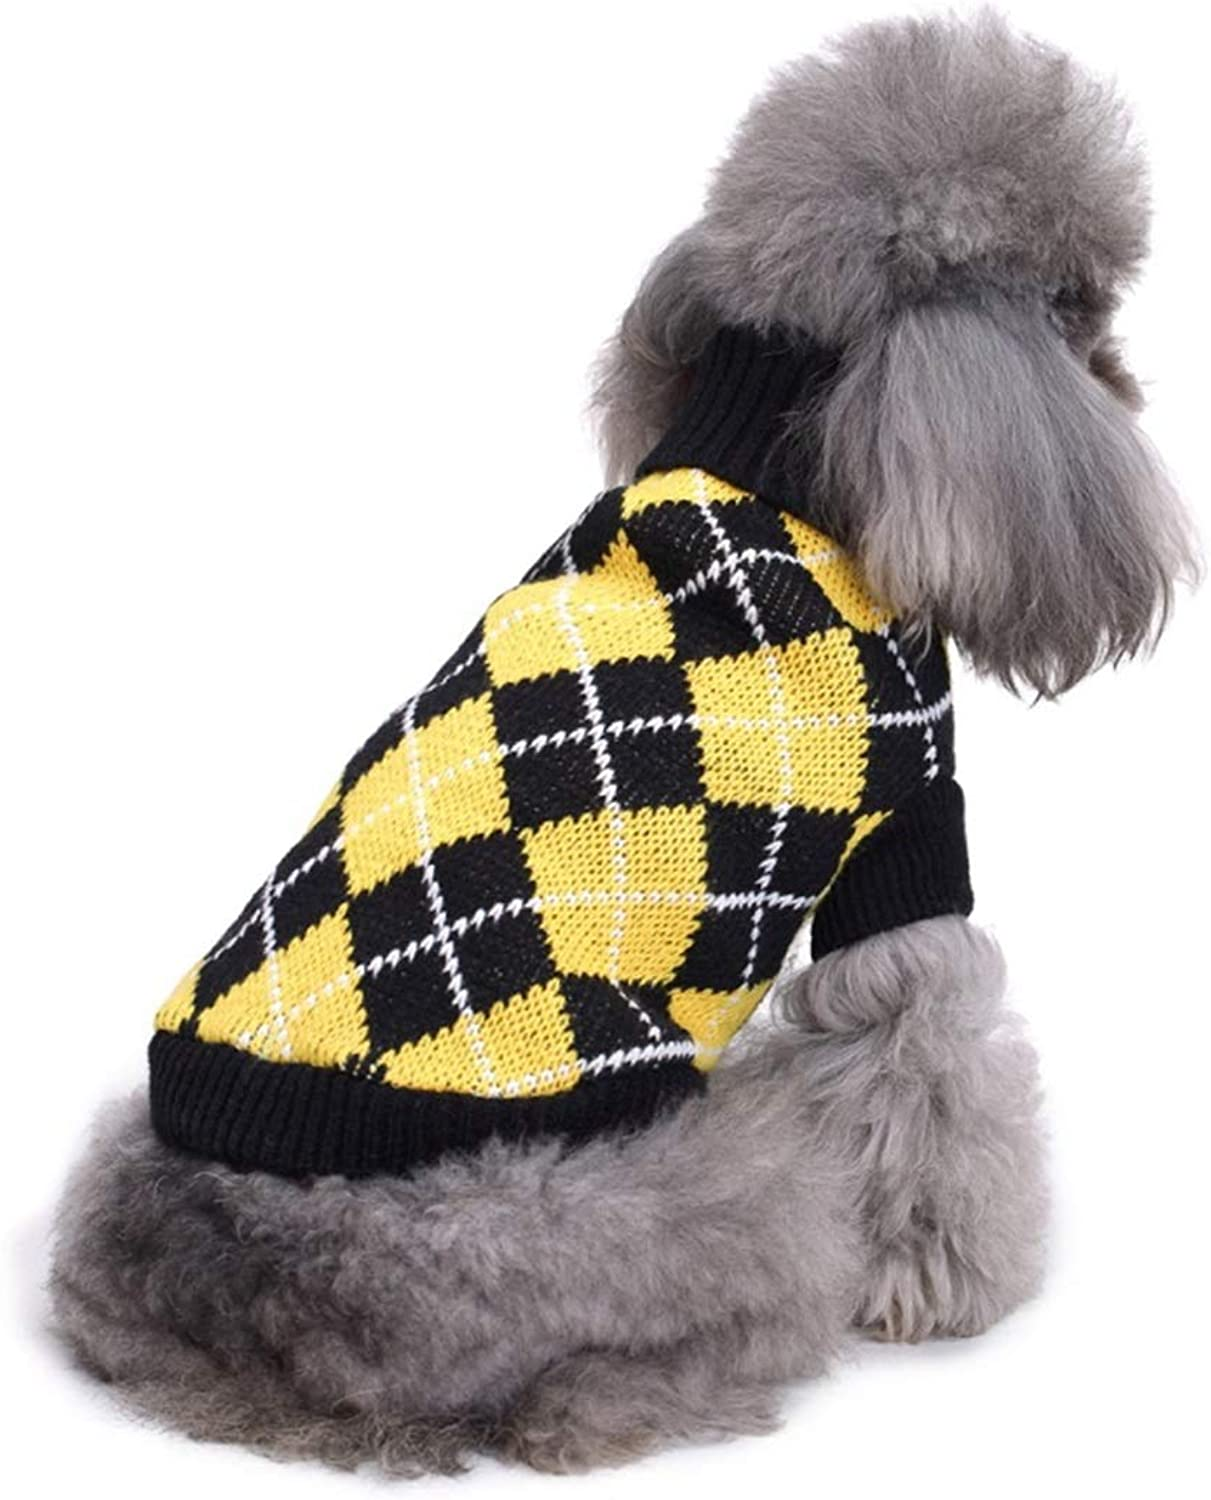 AUSWIEI Pet Clothes Sweaters Striped Turtleneck Dog Clothes Dog Sweaters Autumn and Winter (color   MYD02 Black Yellow Grid, Size   S)